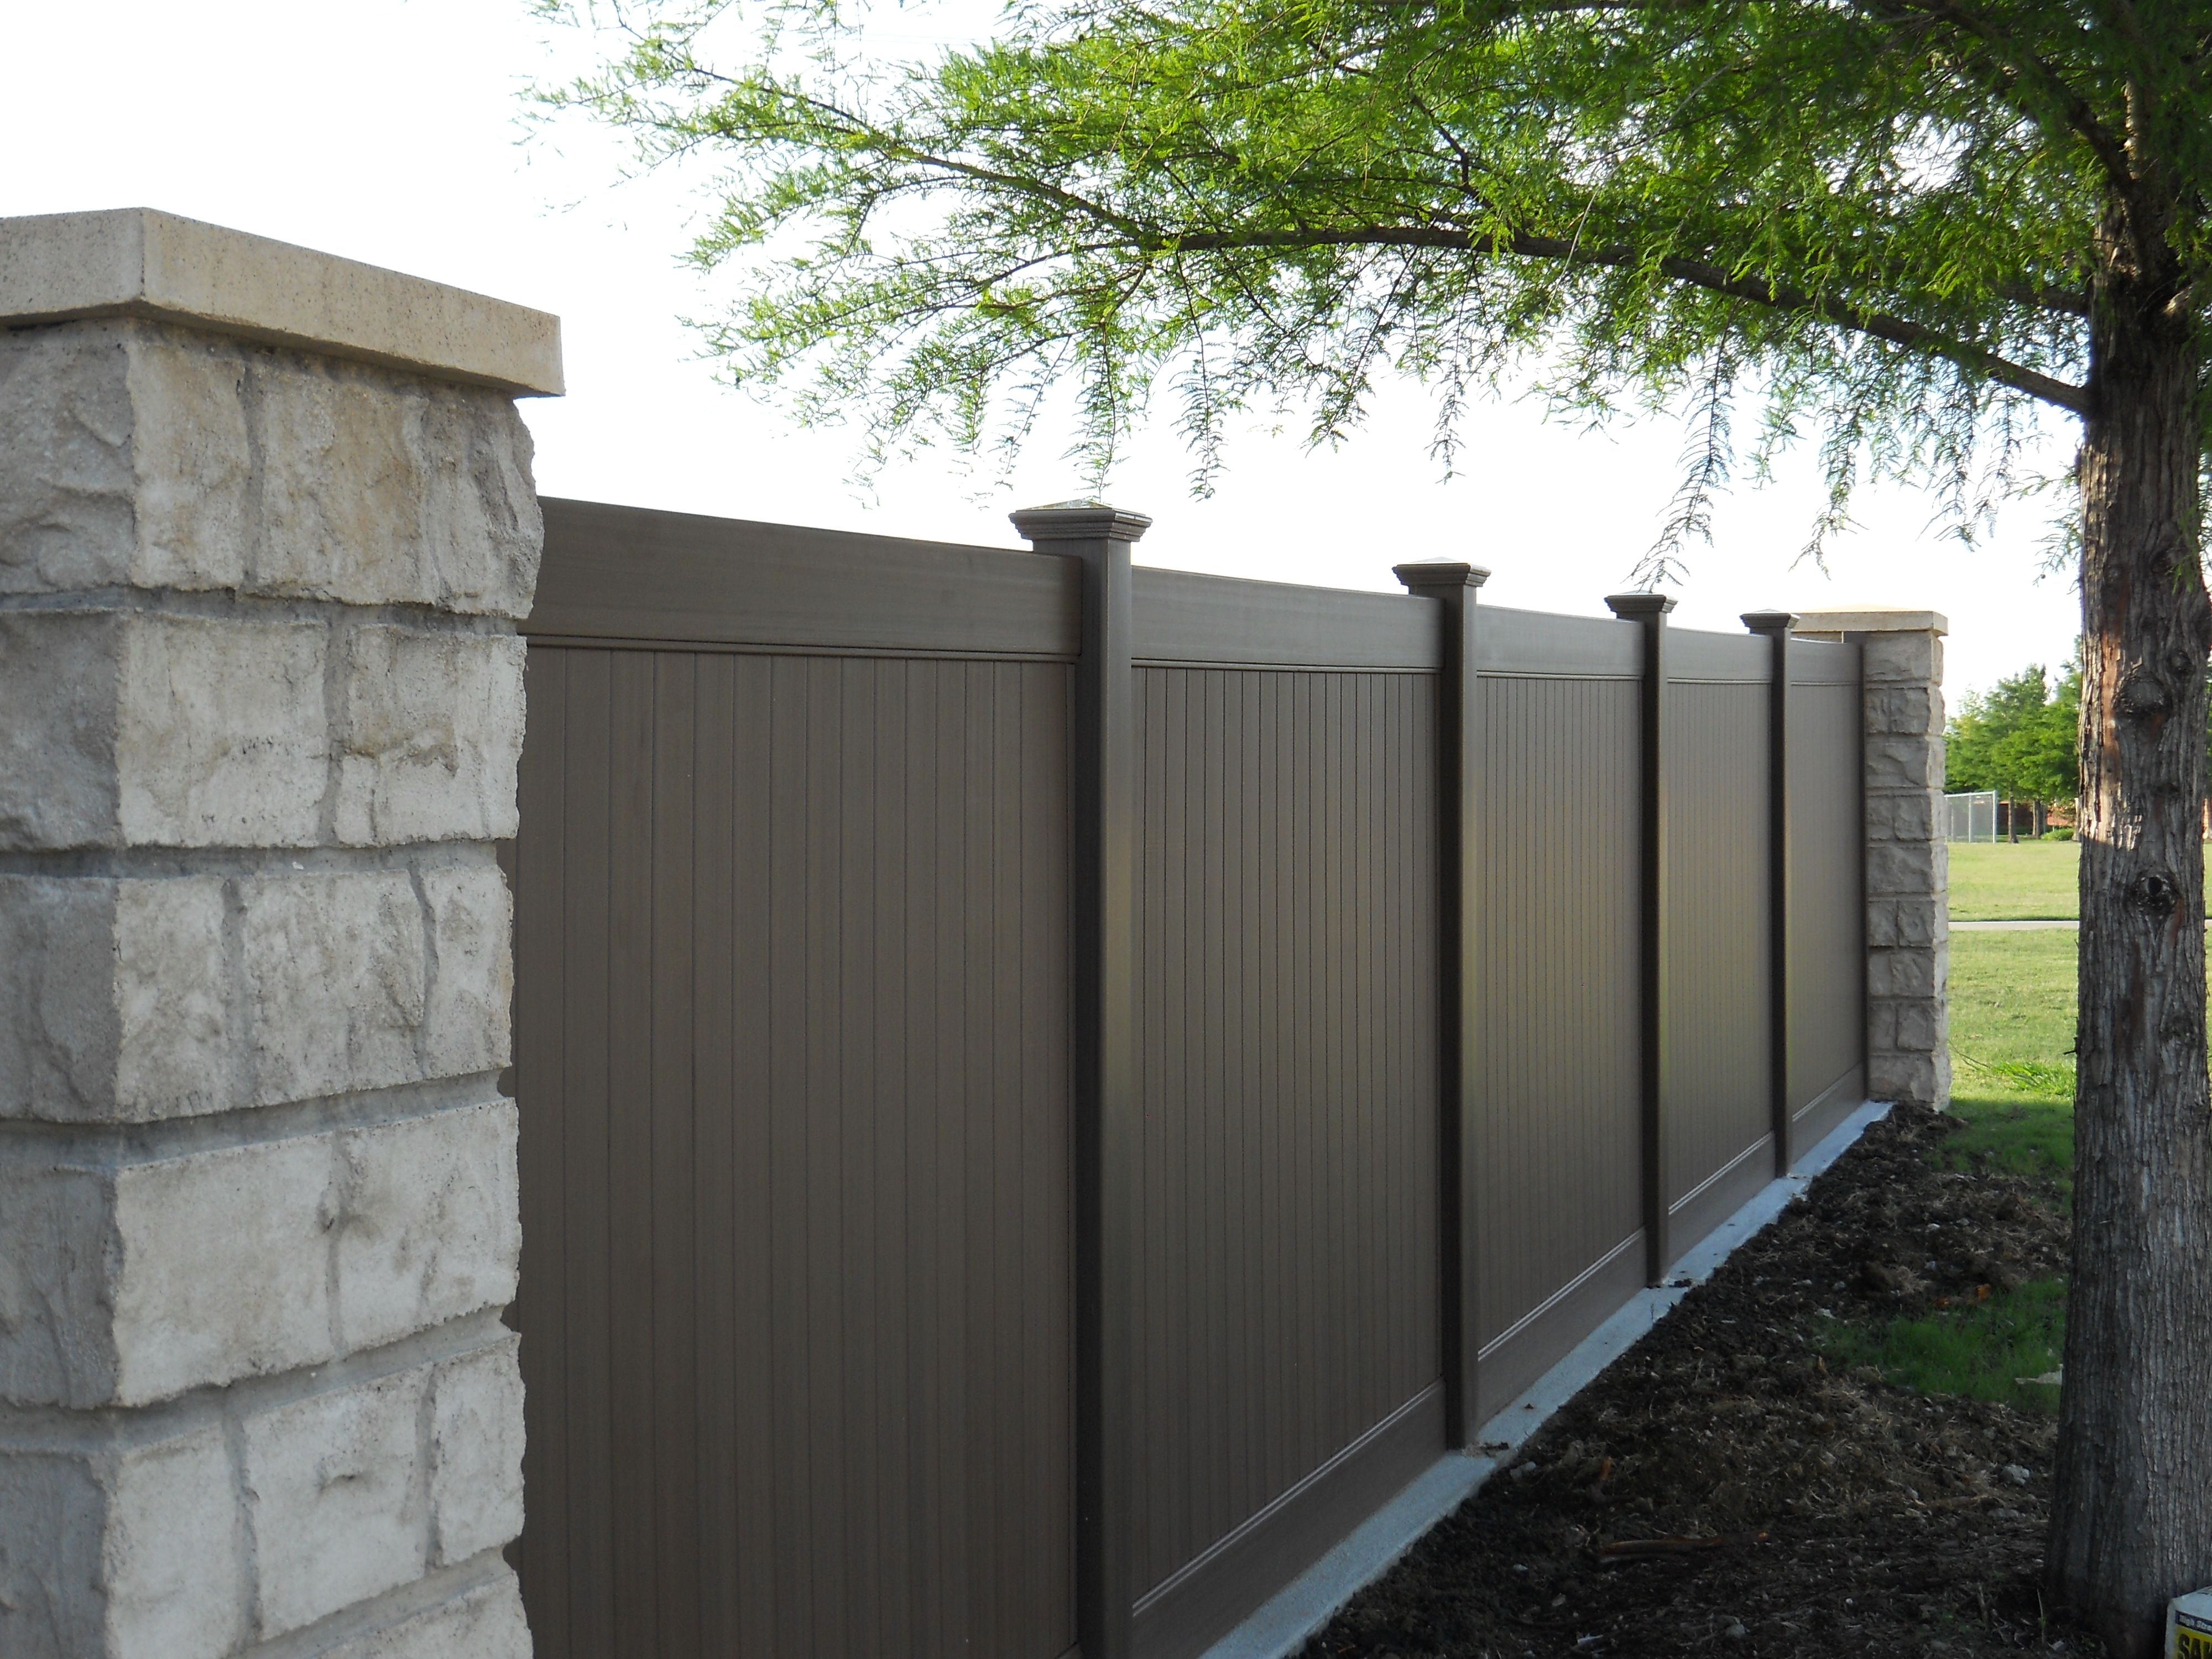 Chestnut Brown Vinyl Privacy Fencing Future Outdoors